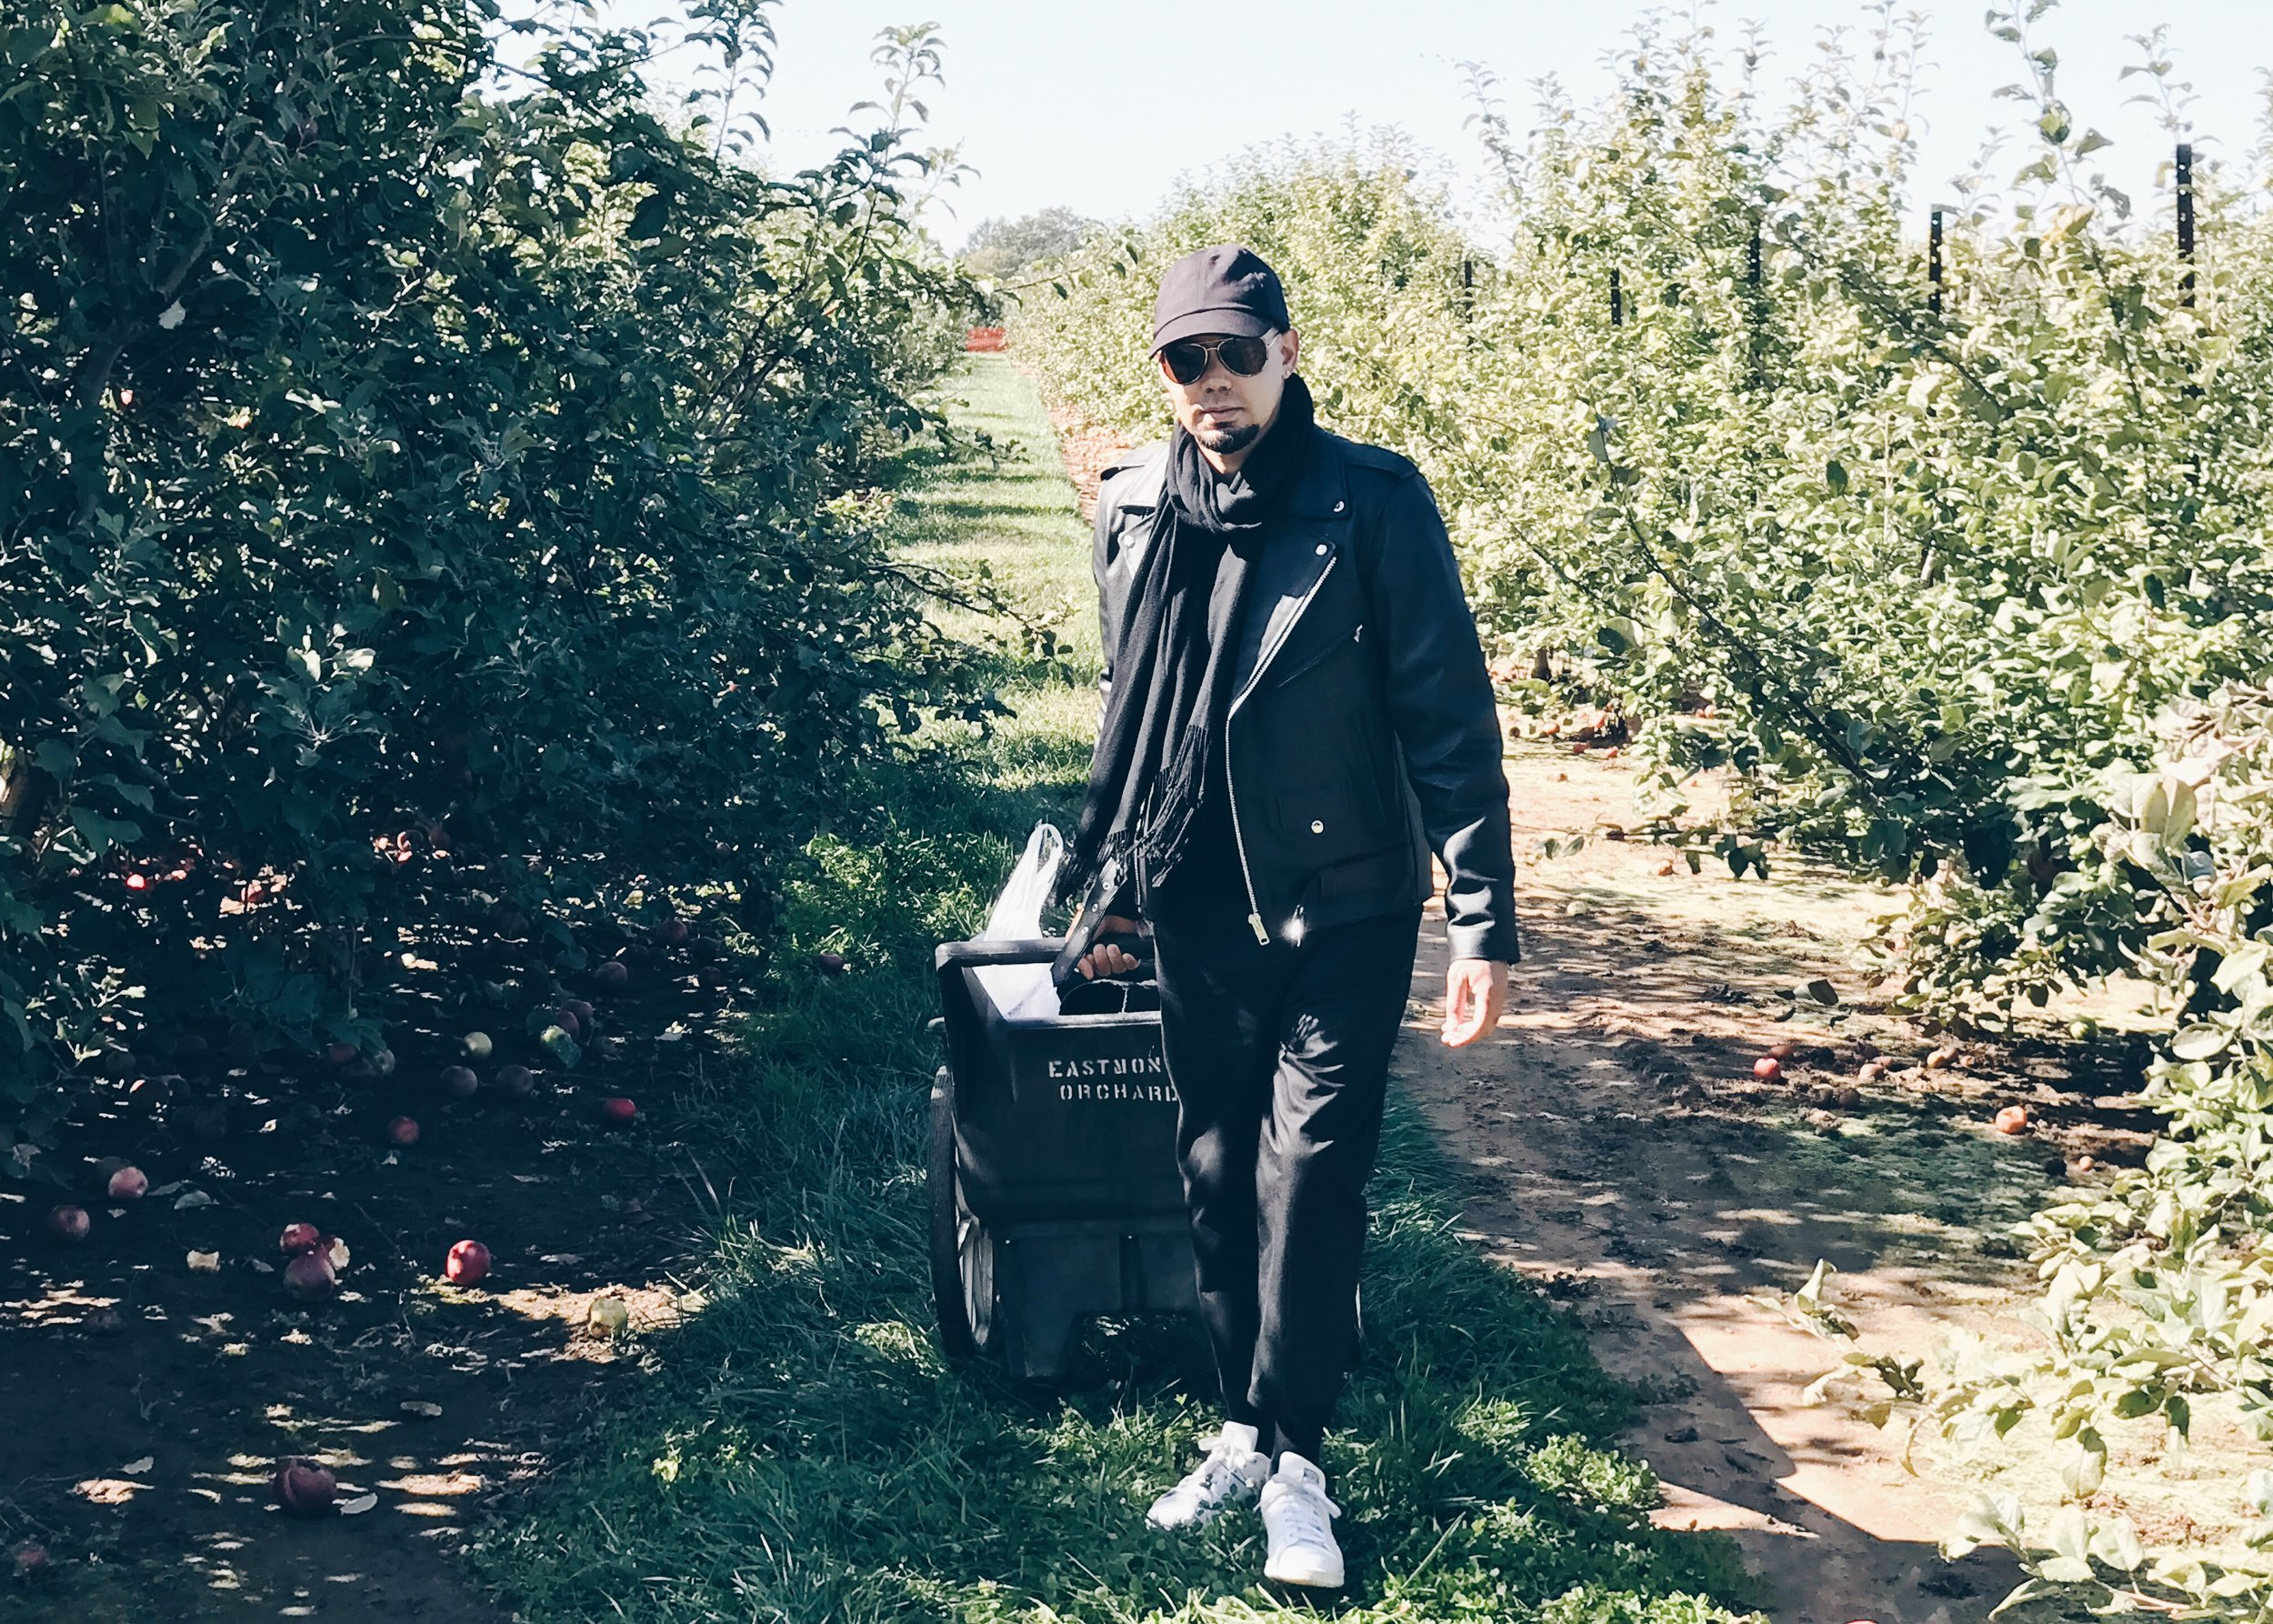 sam-c-perry-apple-and-pumpkin-picking-delicious-orchards-apple-tart-cart-pull.jpg